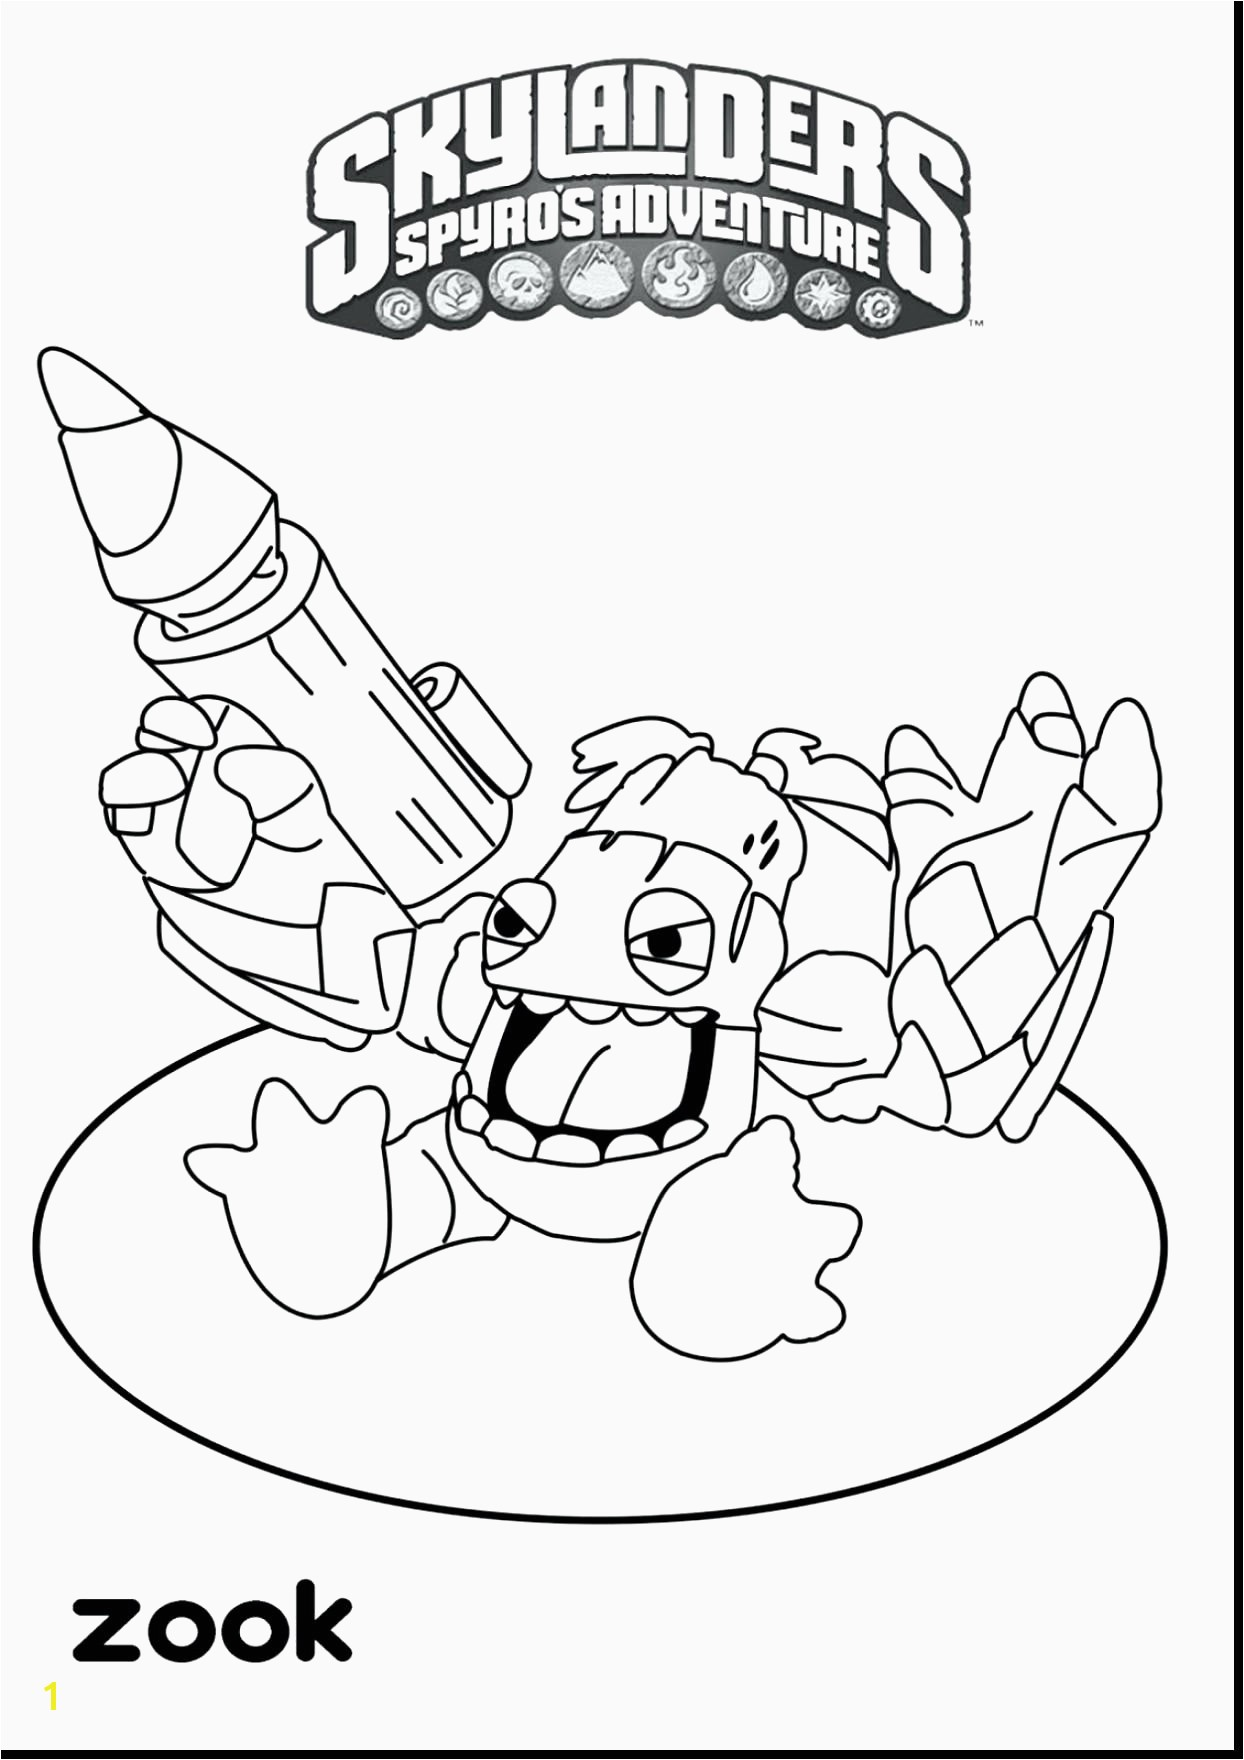 Spongebob Coloring Sheets Lovely Christmas Spongebob Coloring Pages